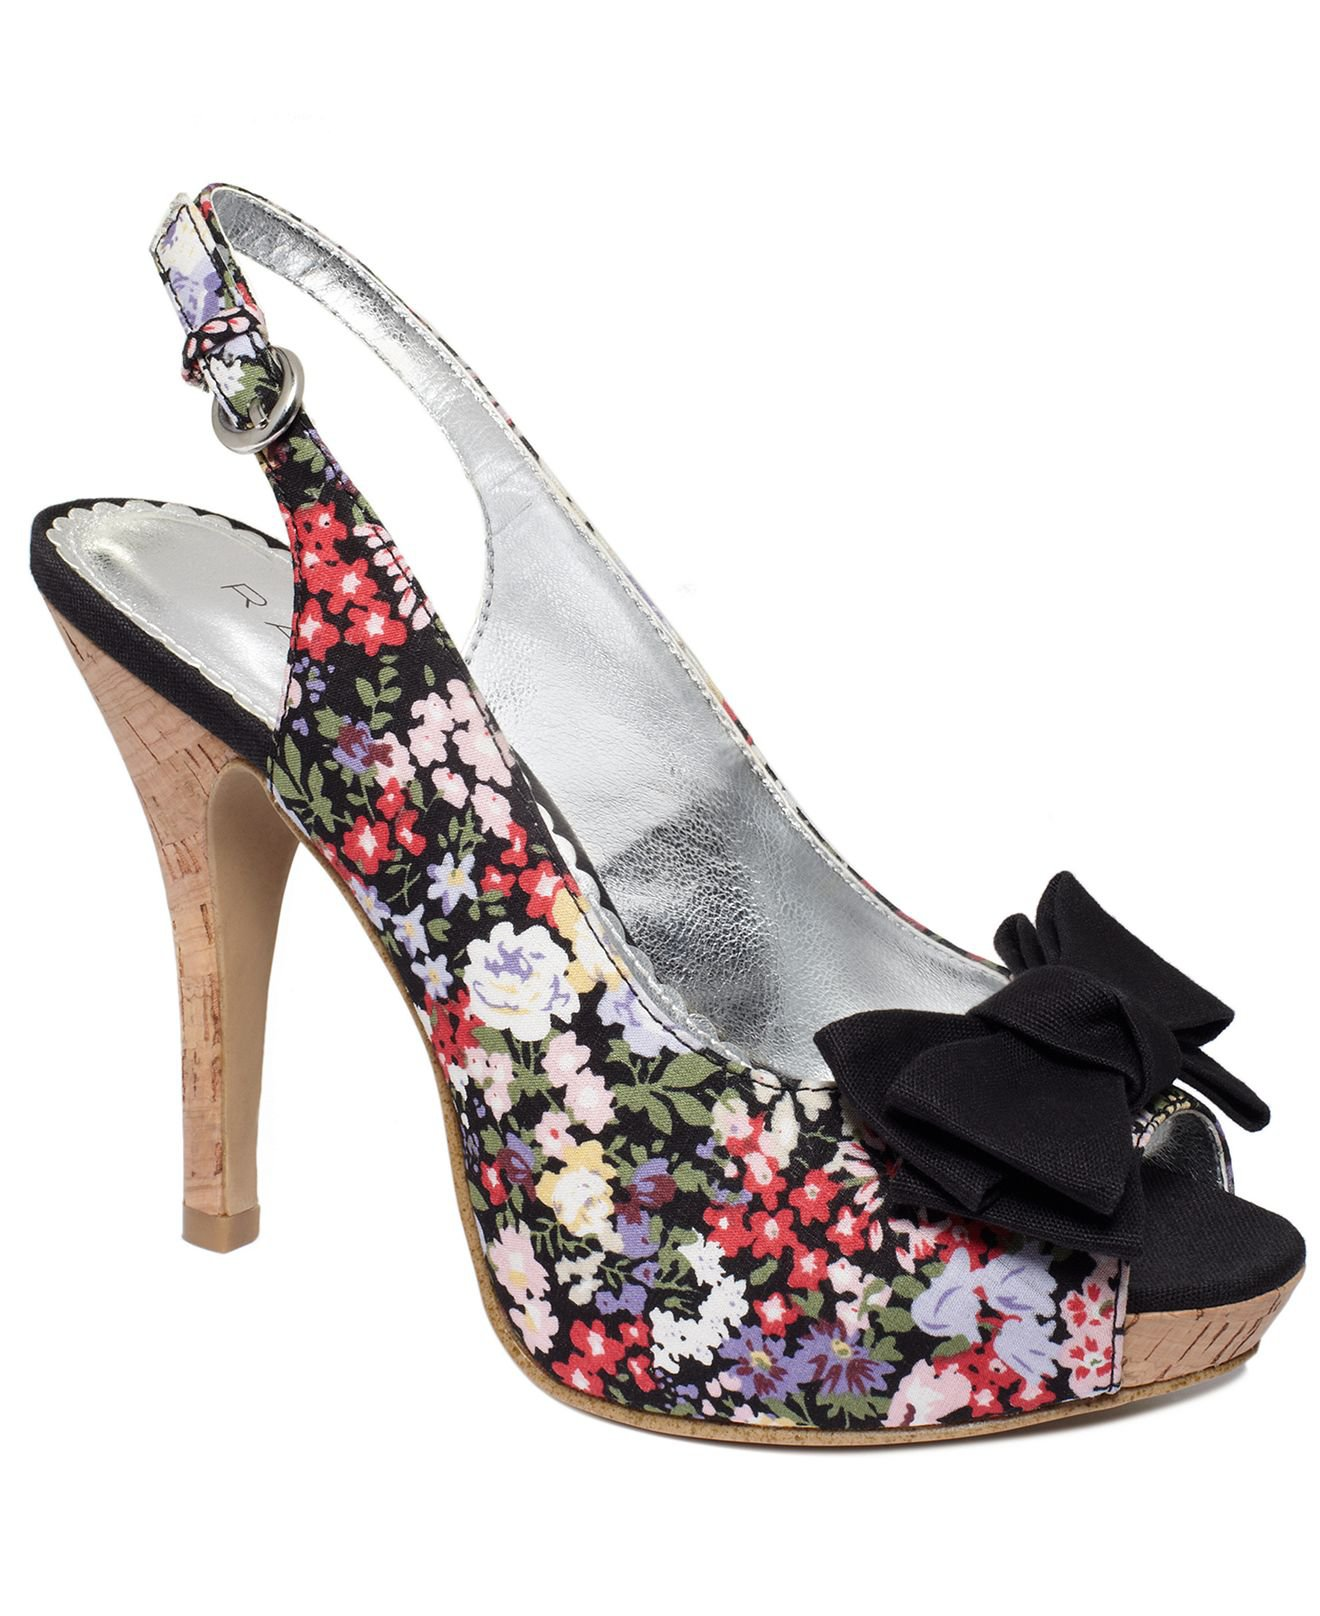 rage shoes girasole platform pumps from macys